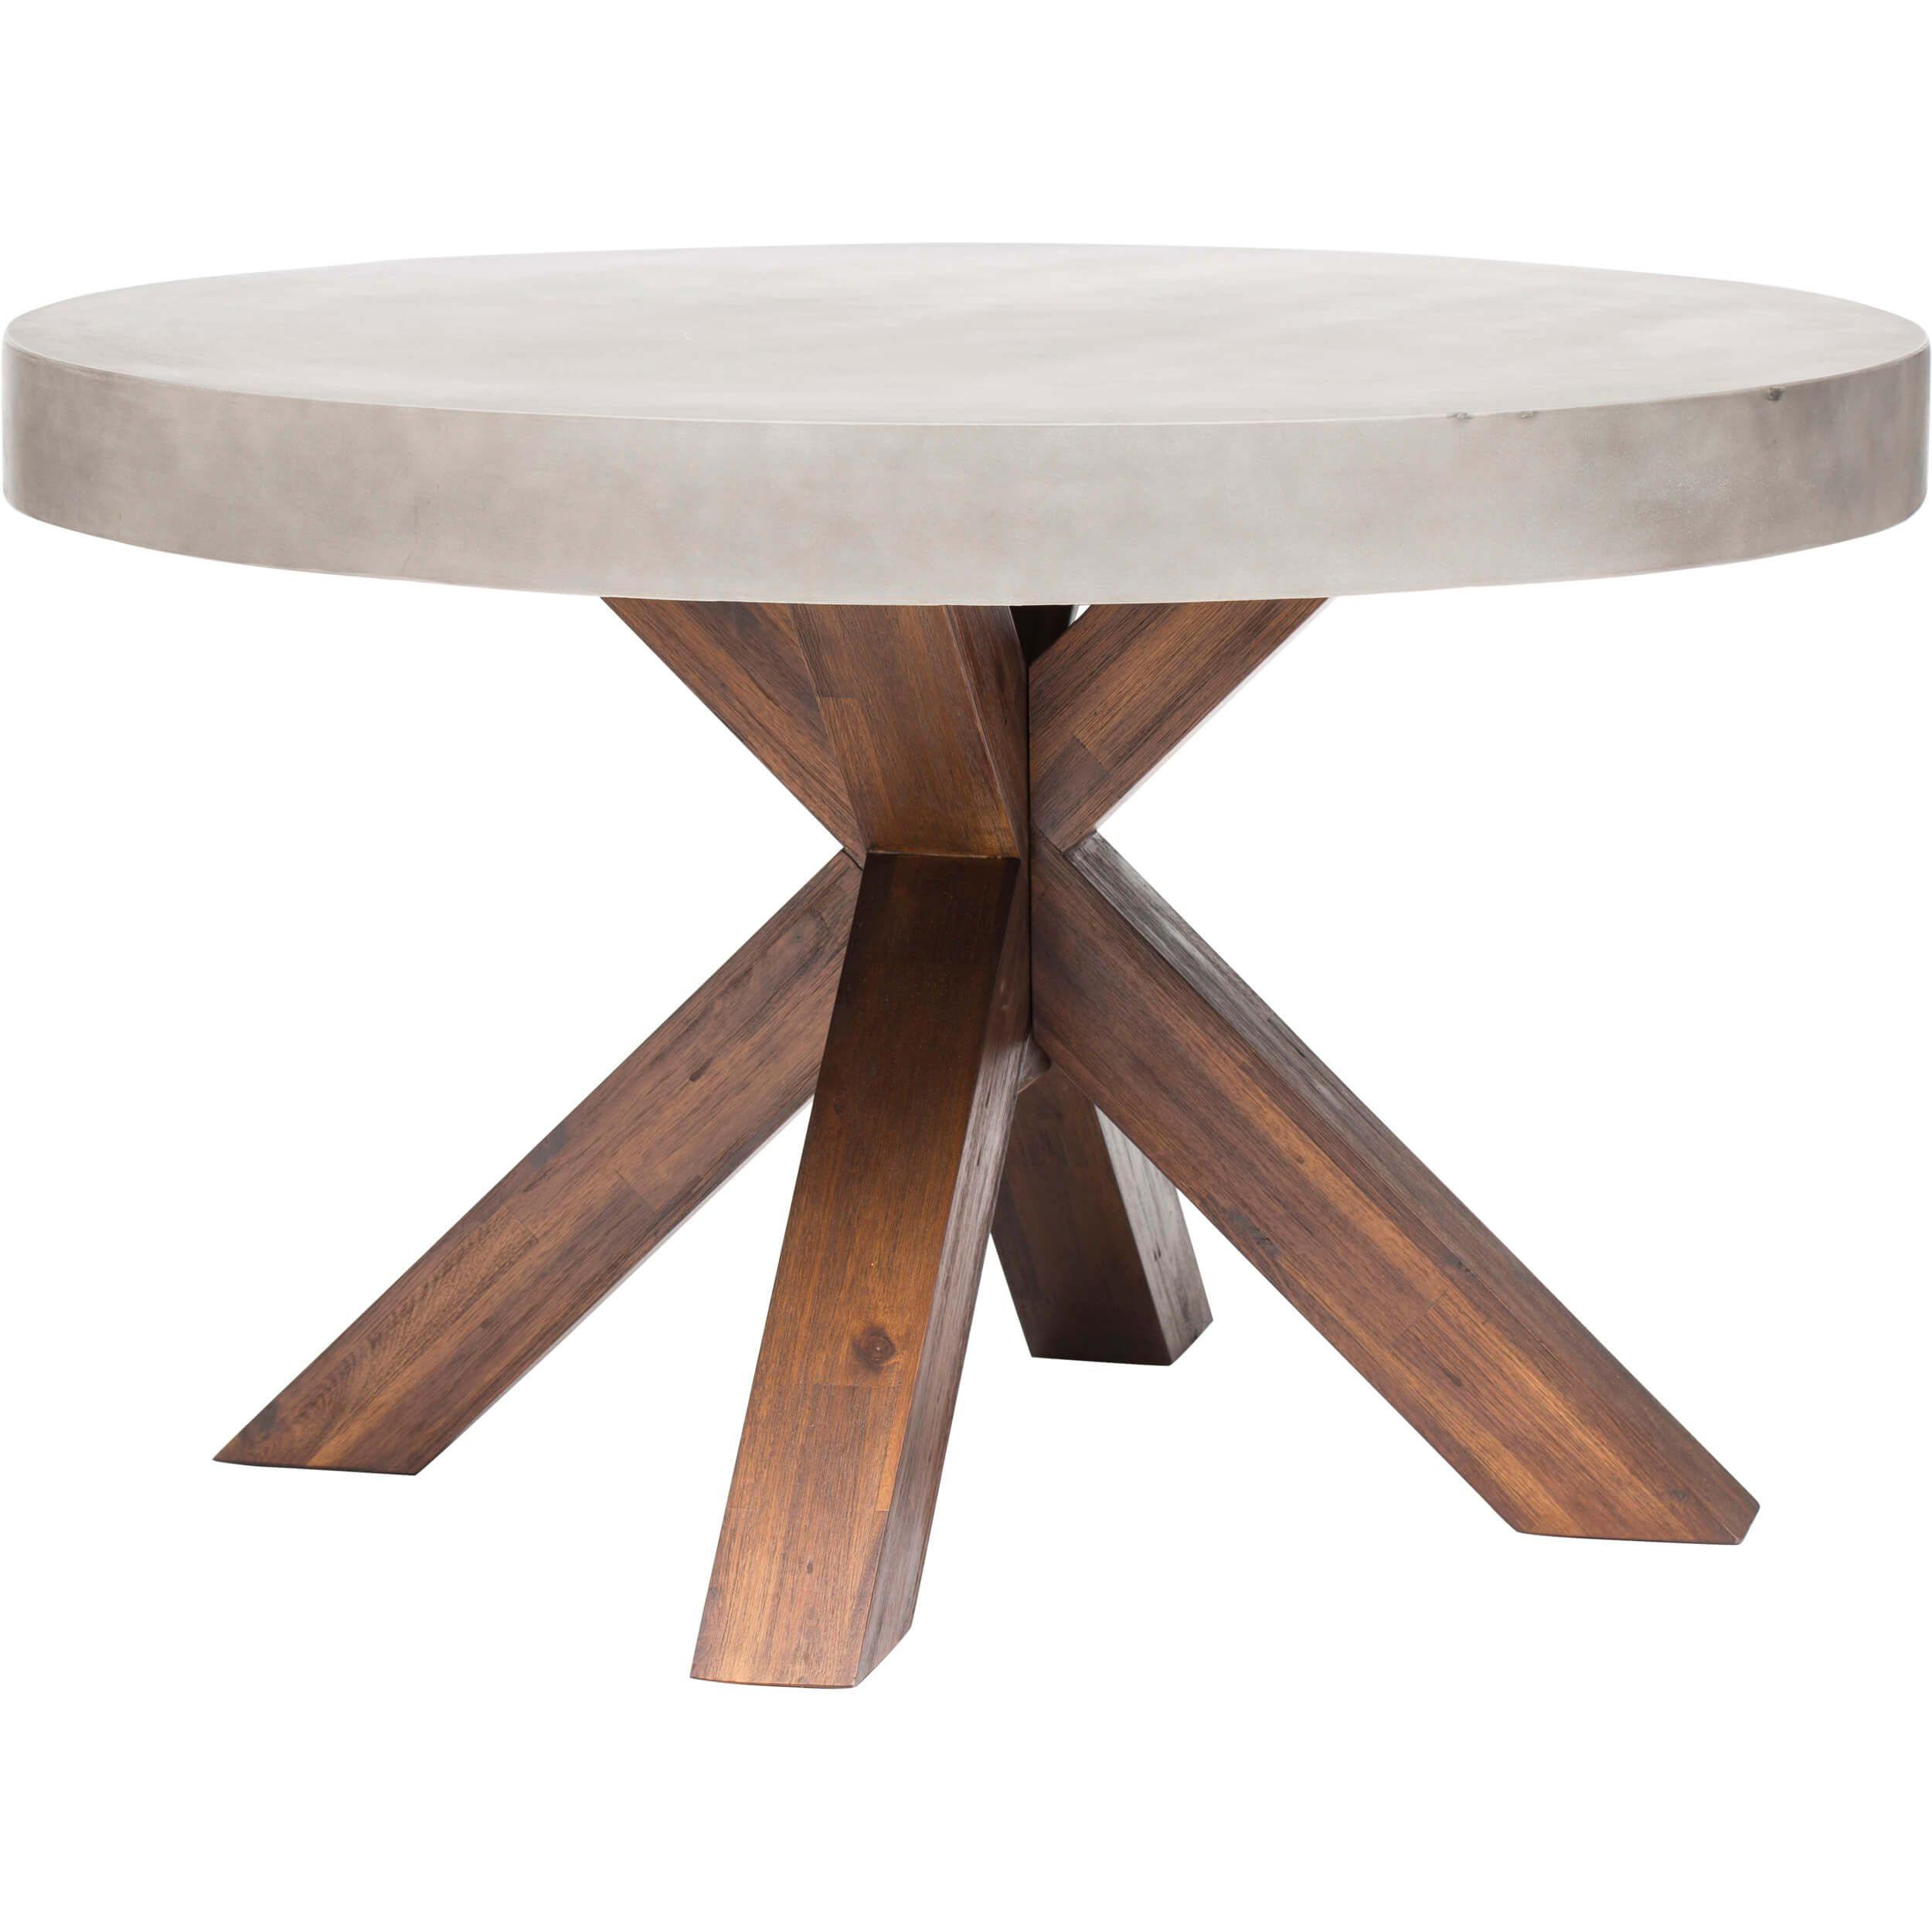 Warwick Round Dining Table Stone Dining Table Concrete Dining